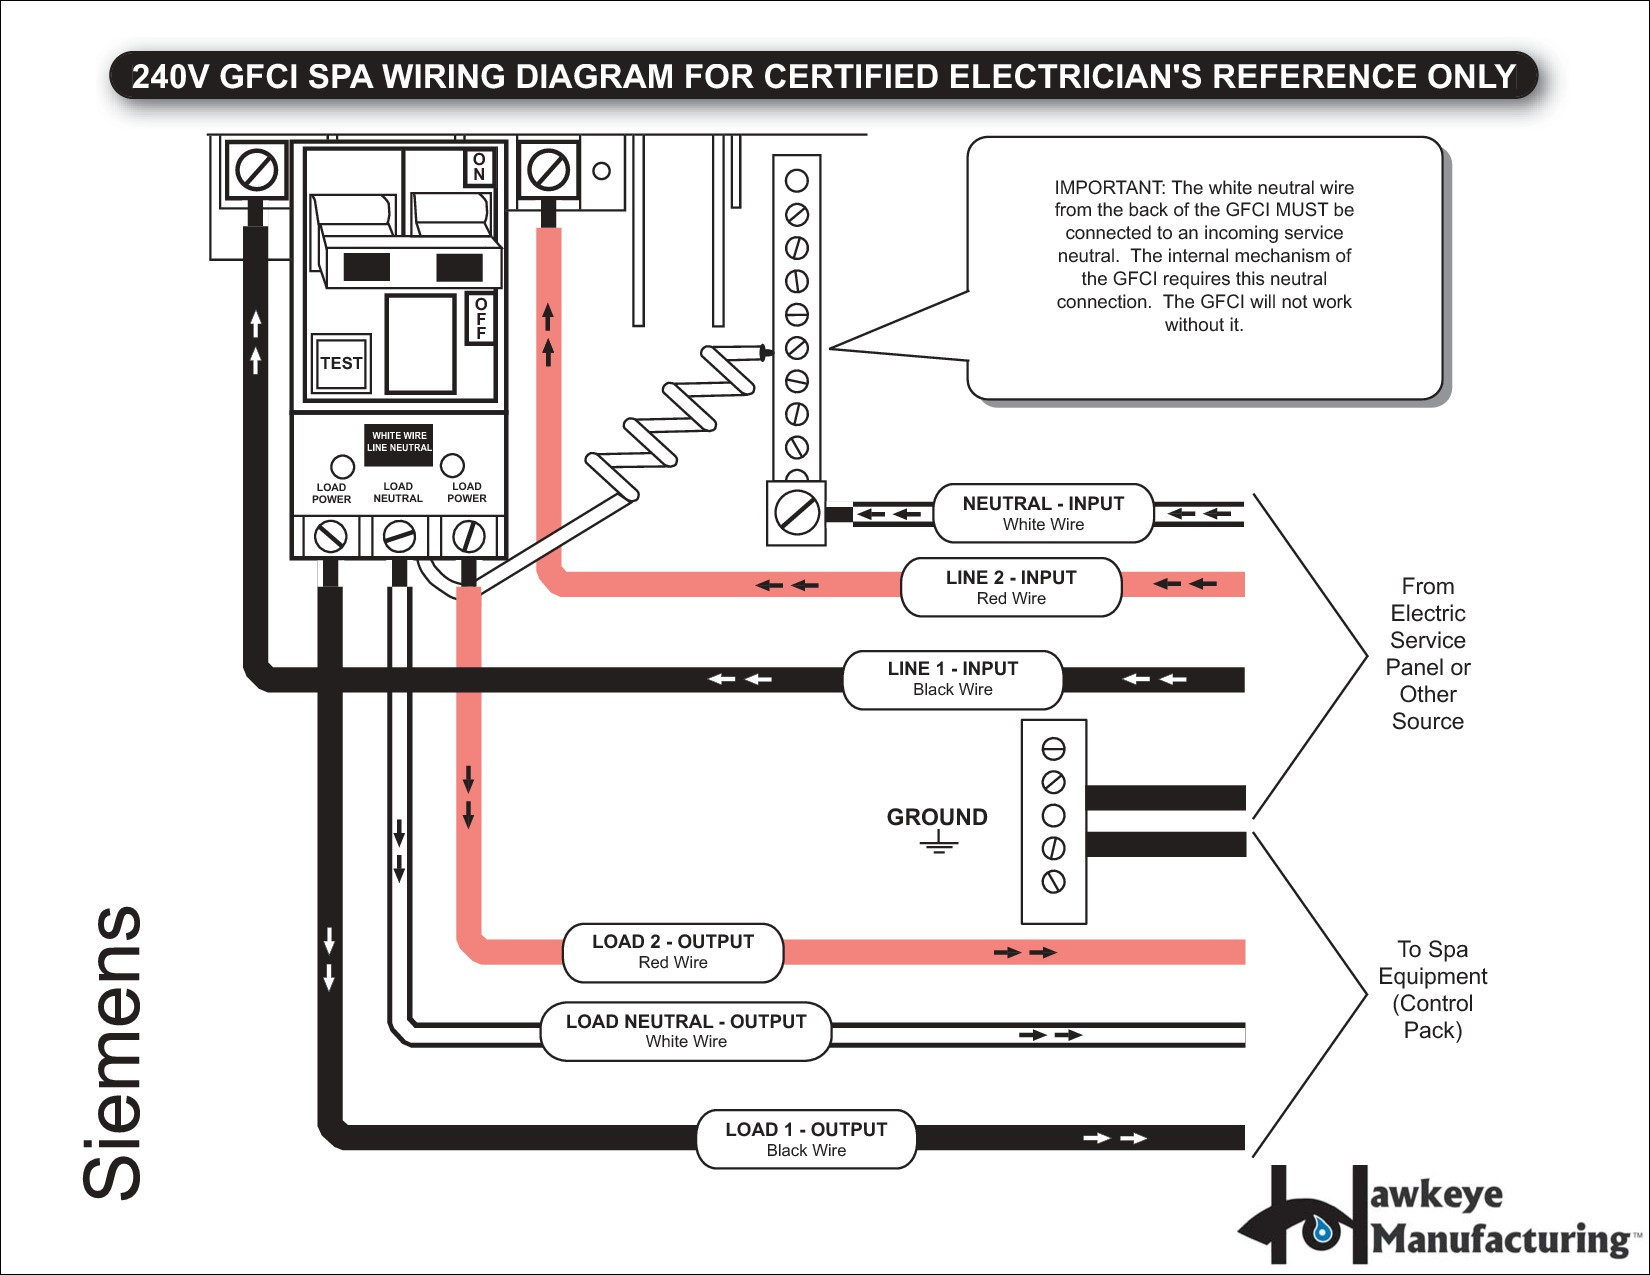 120v Breaker Wiring Diagram